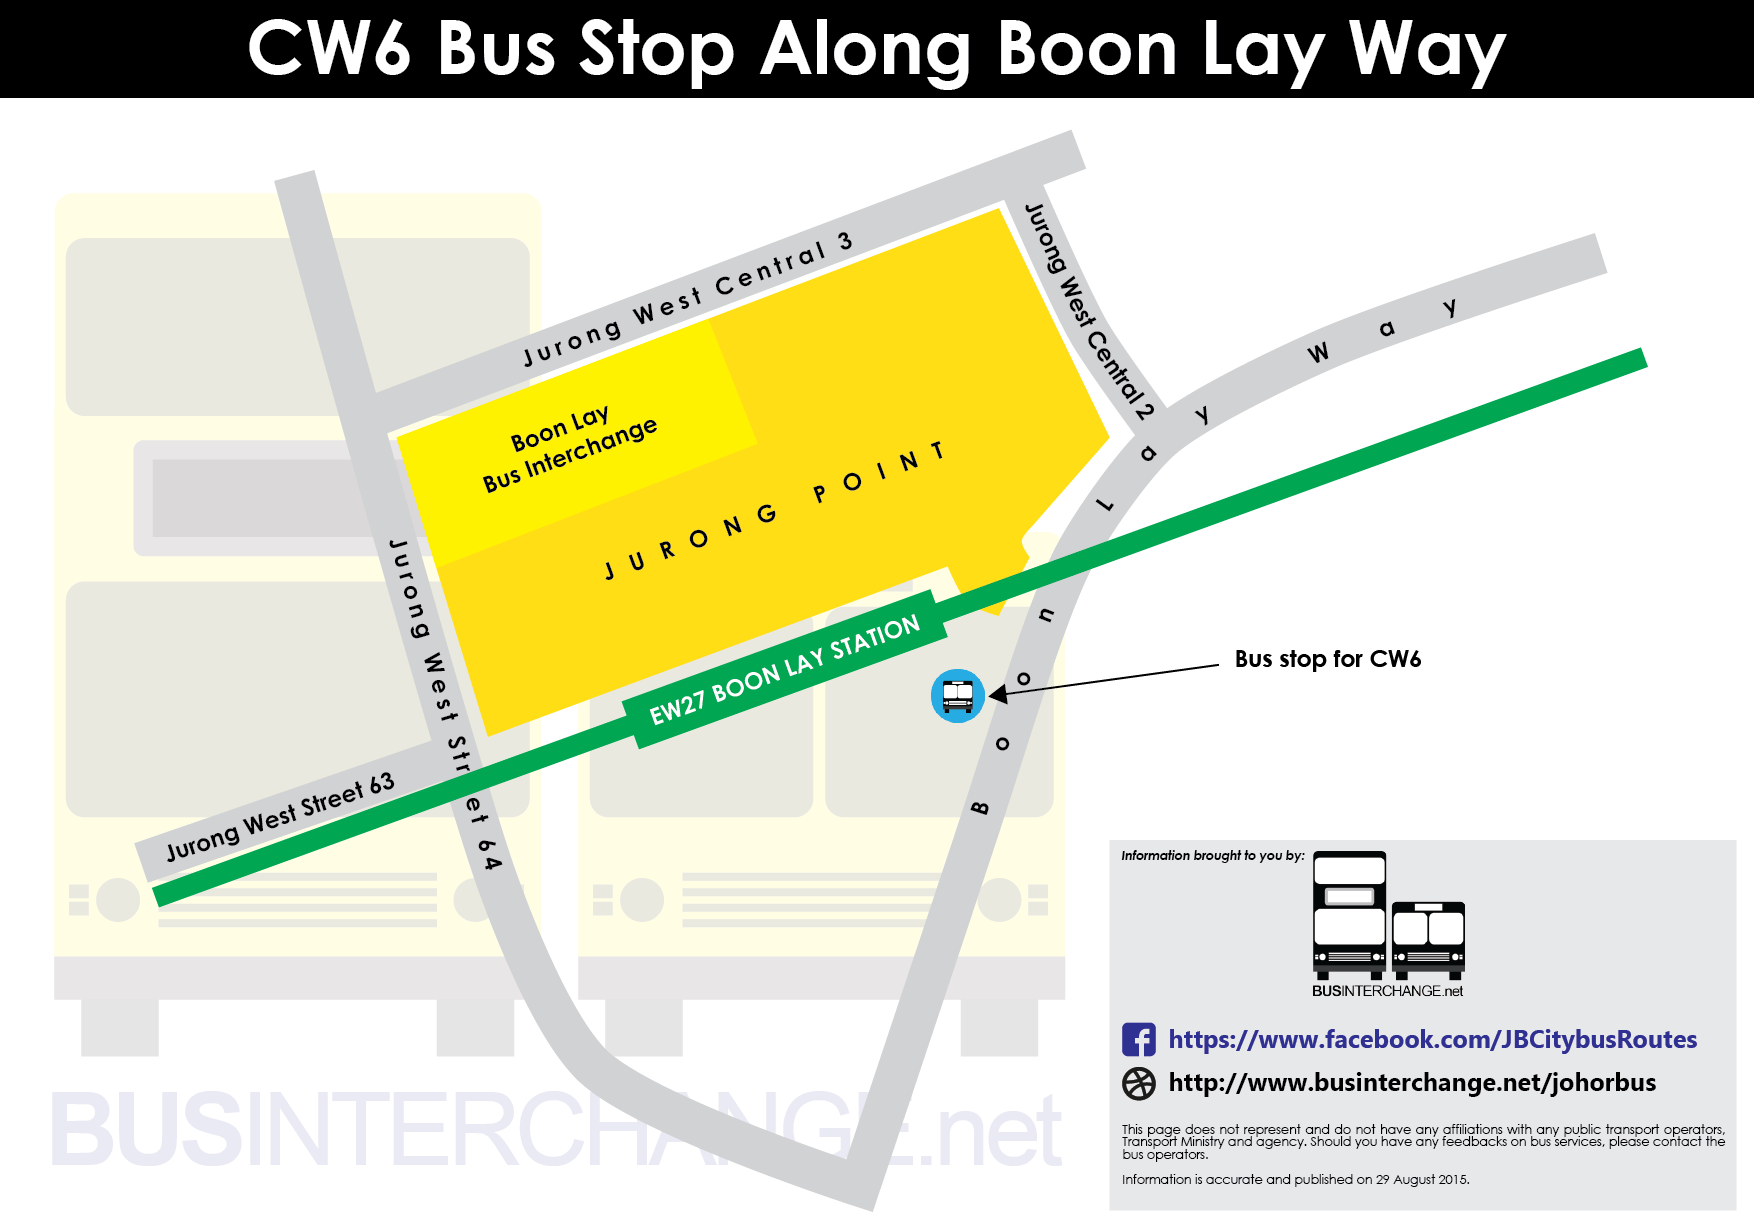 Boarding location at Boon Lay for CW6